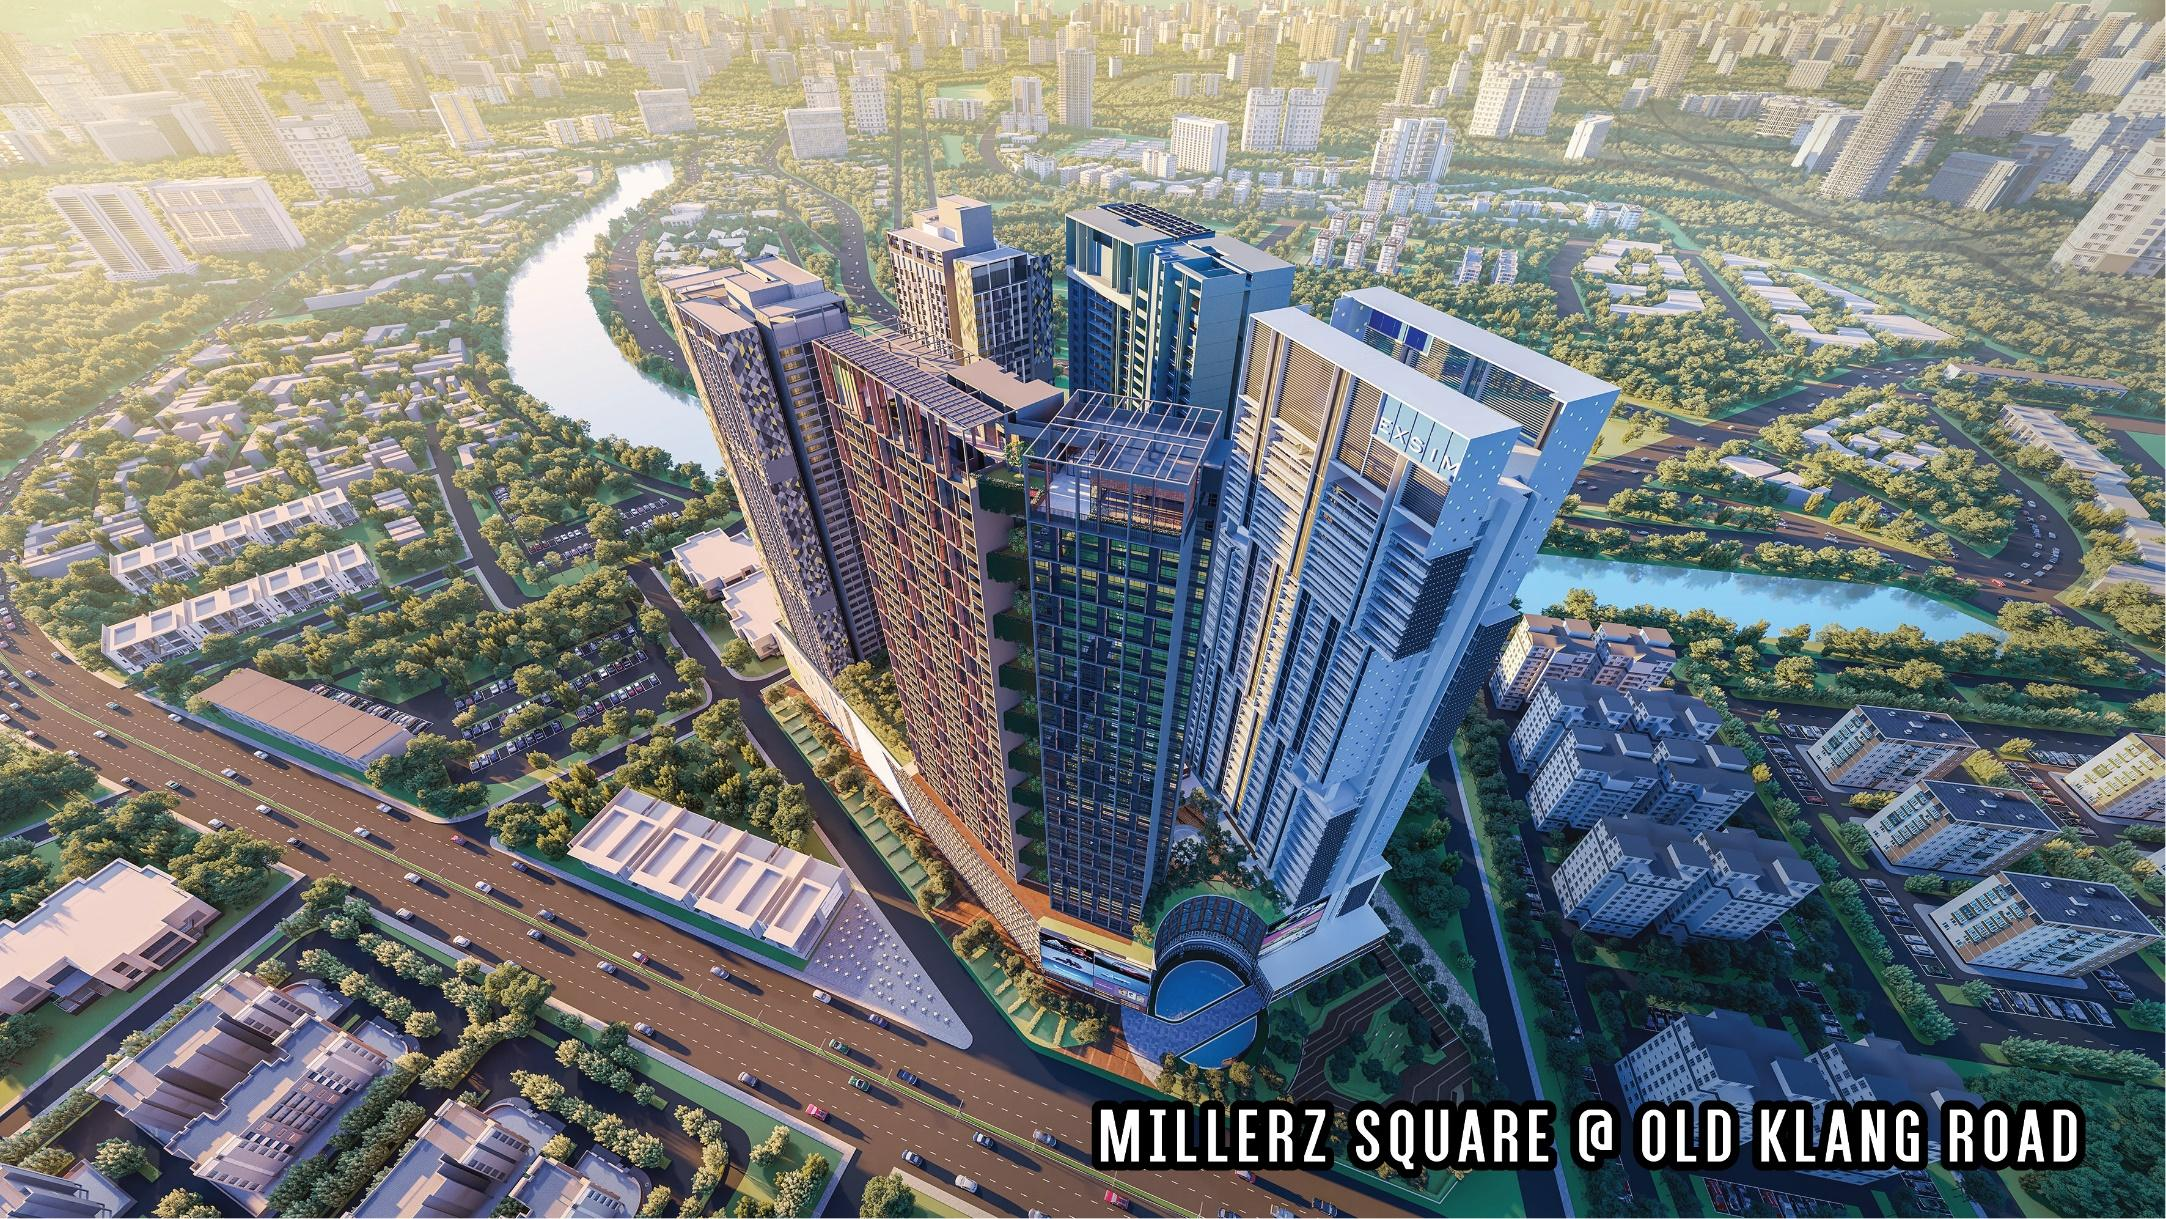 Millerz-square-old-klang-road-okr-condo-kuala-lumpur-kl-bird-view